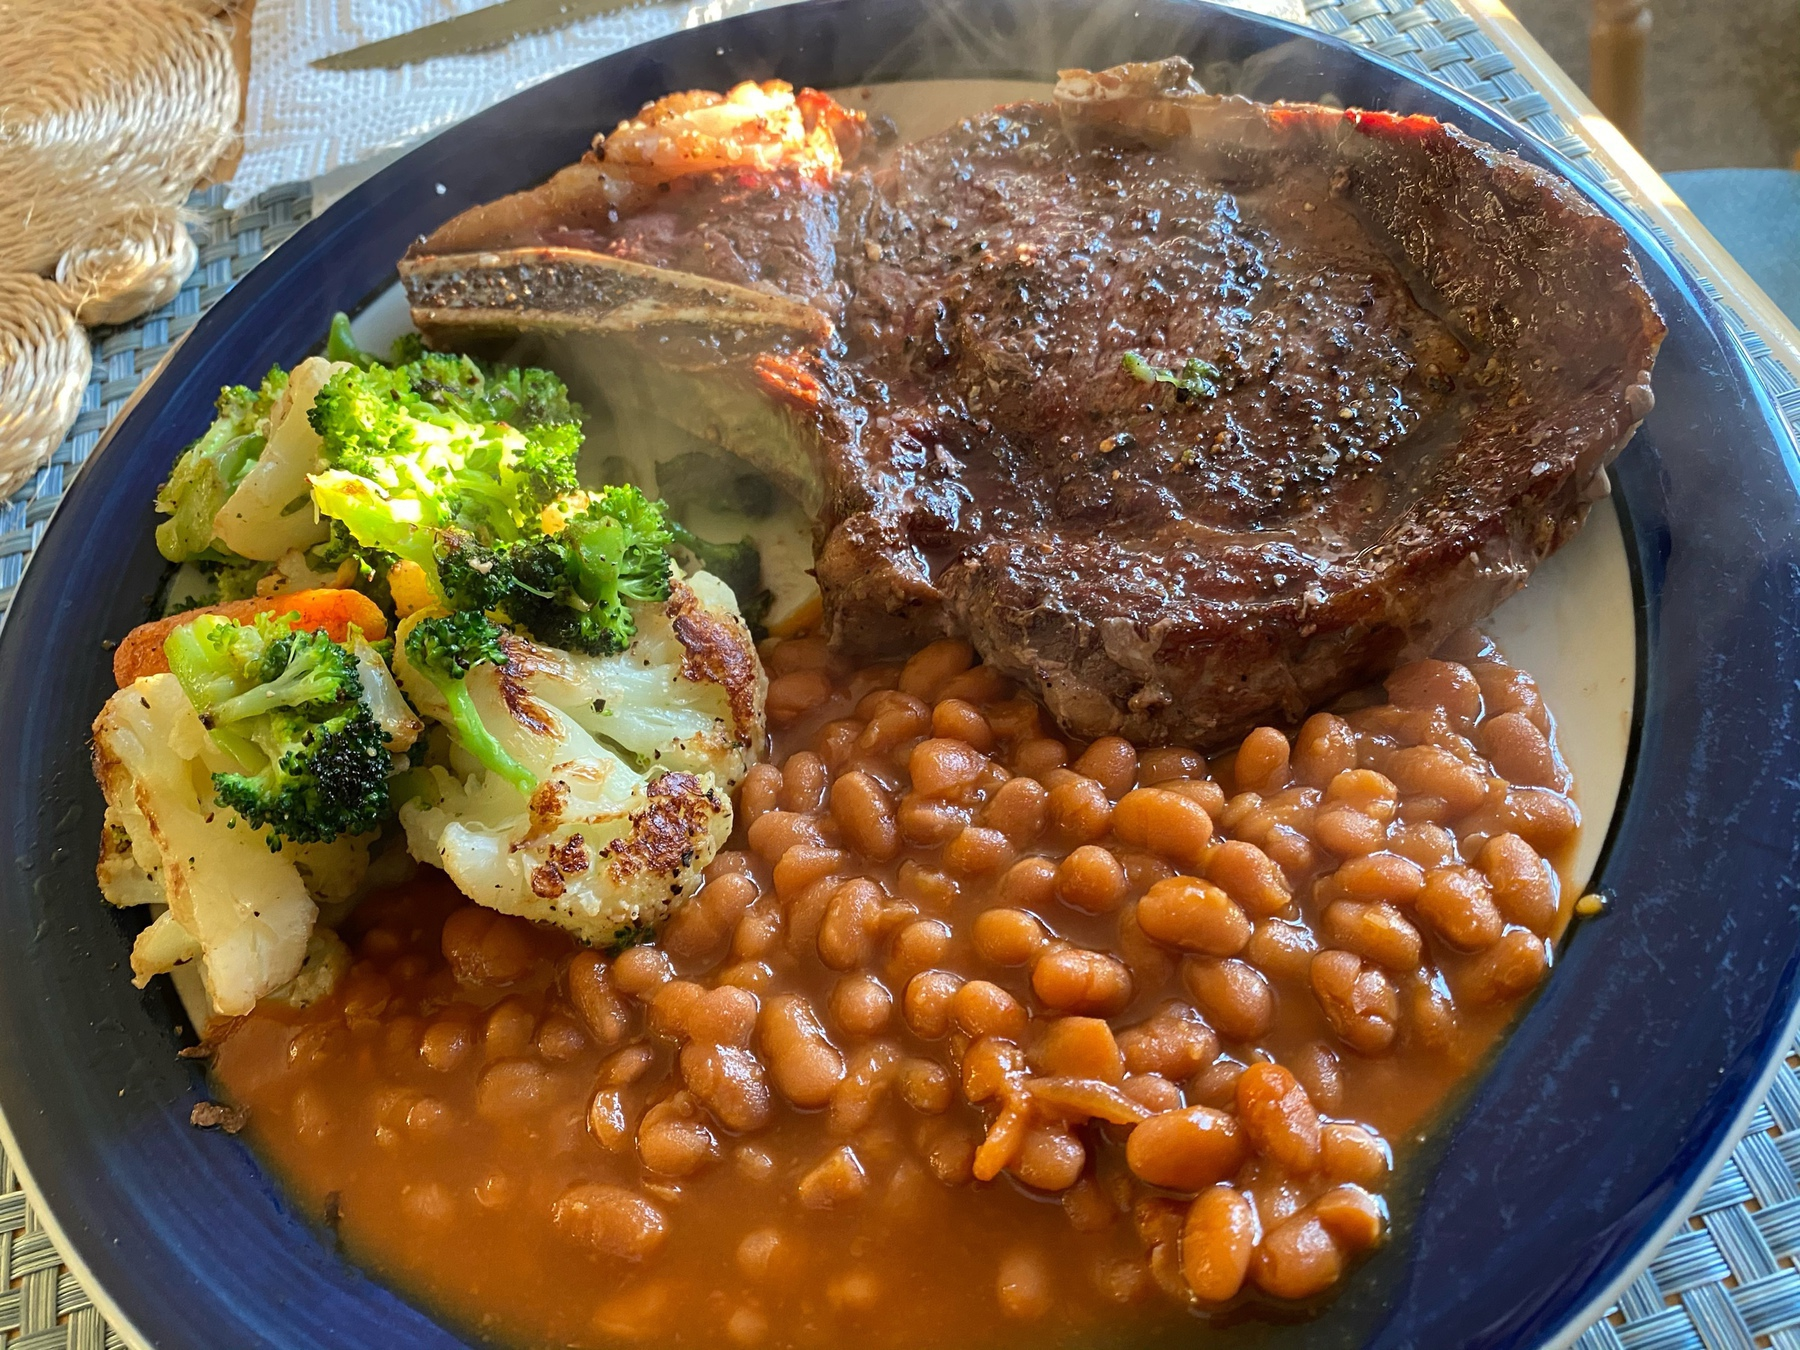 ribeye, searer vegetables, baked beans